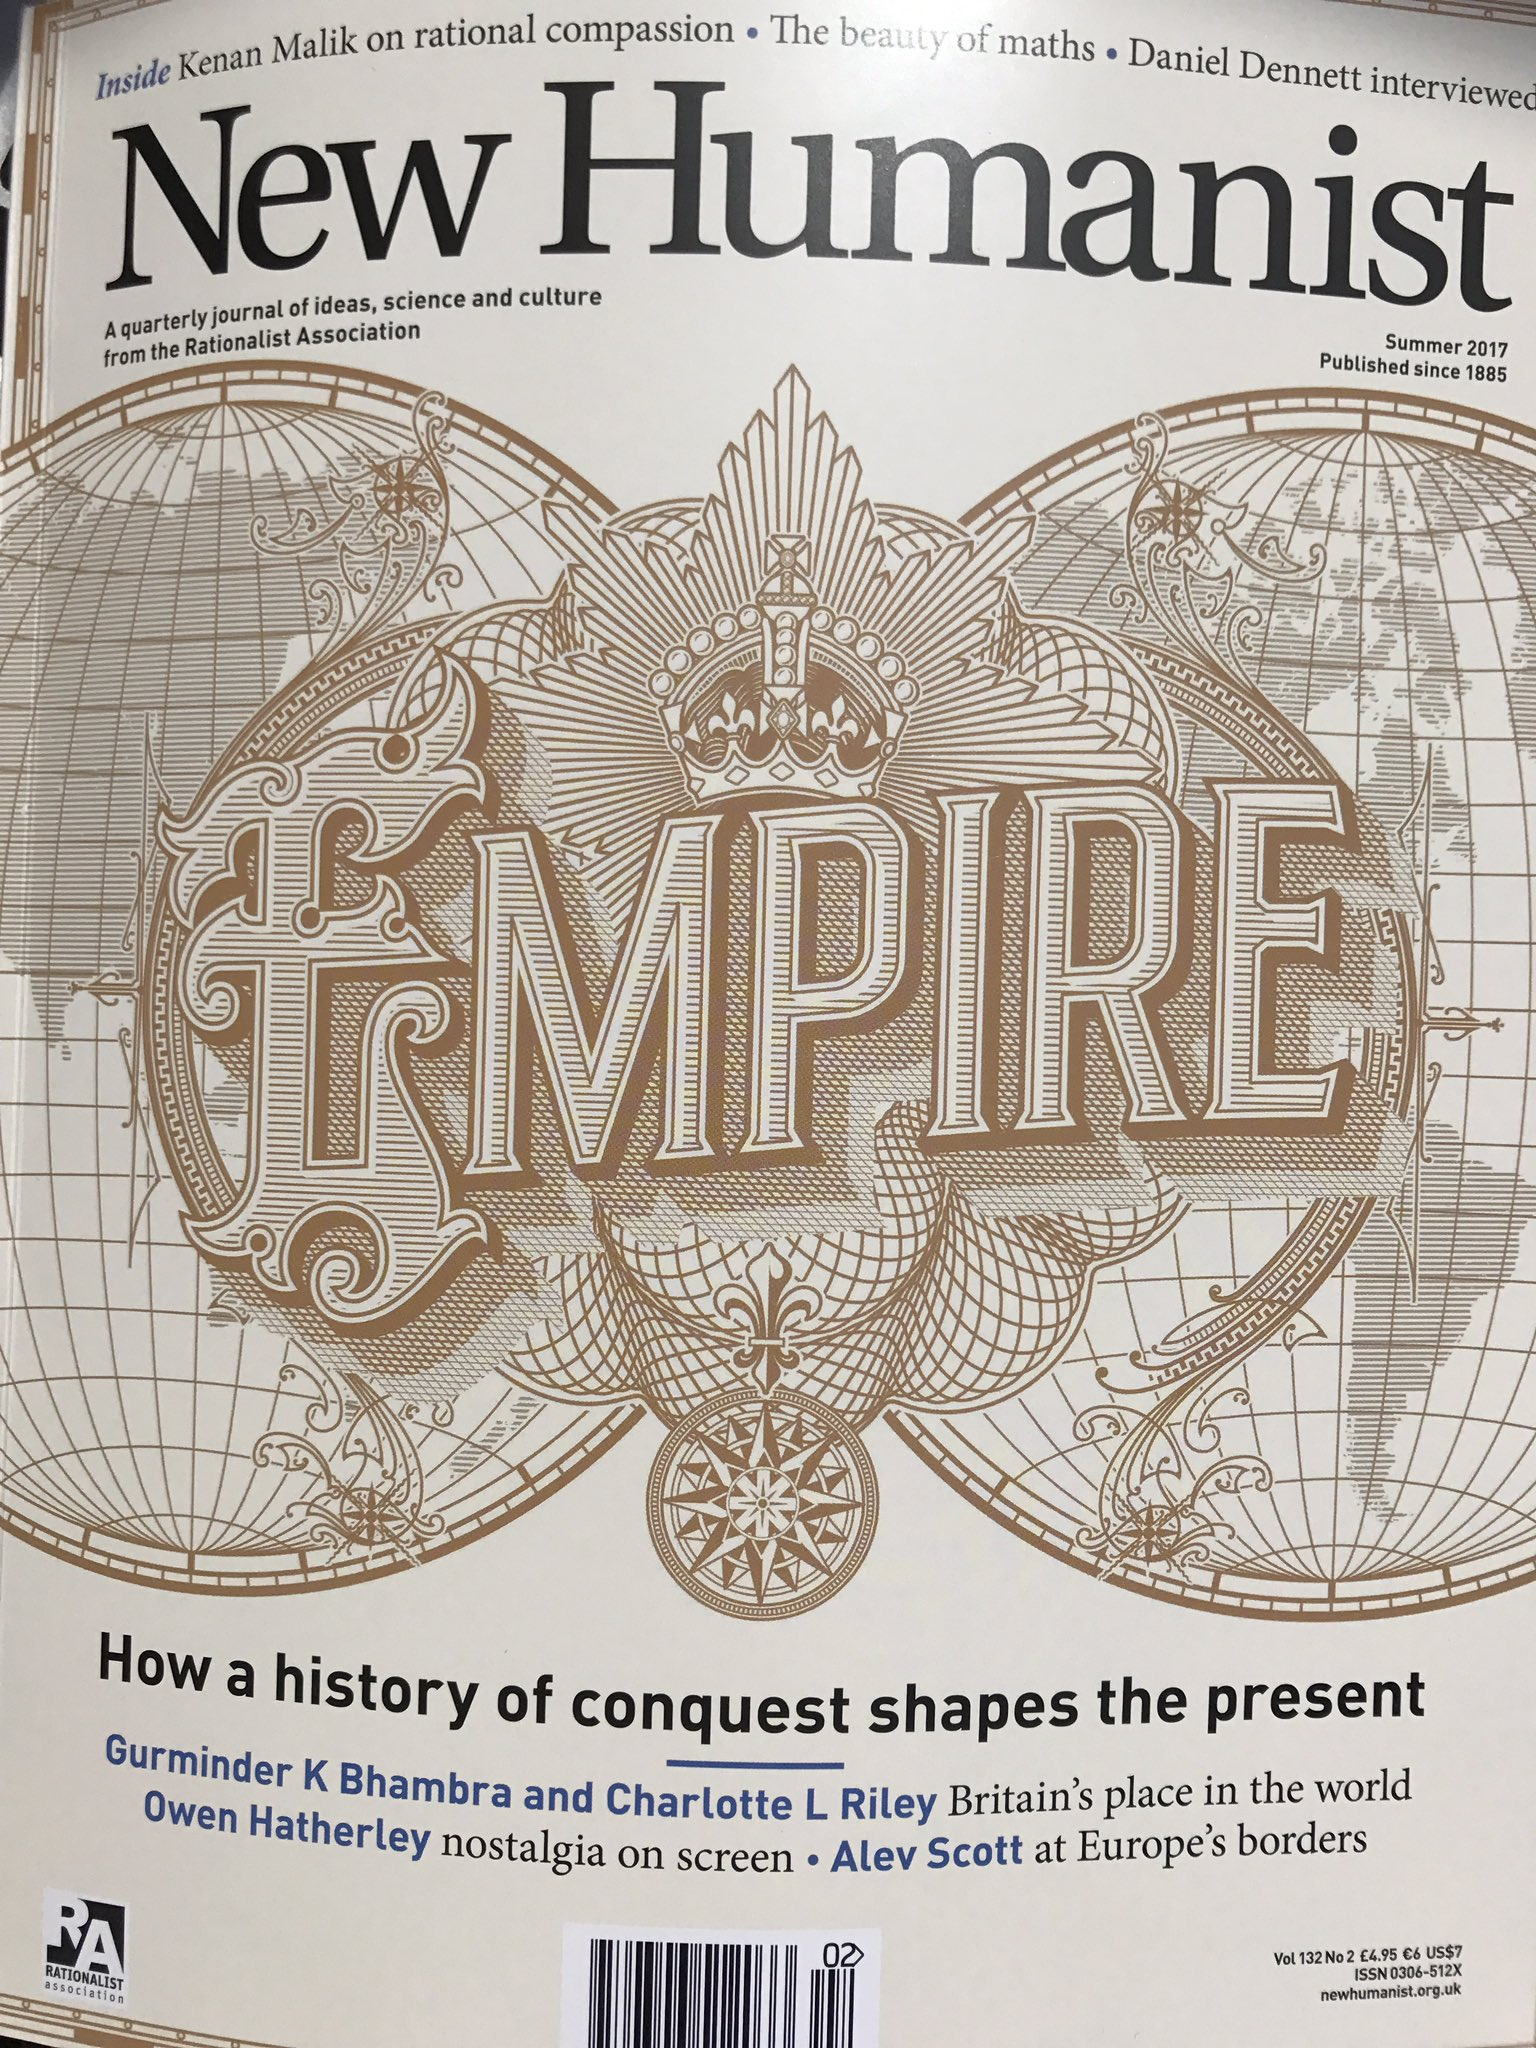 Prep for tomorrow's #EverydayEmpires conference @unibirmingham with @lottelydia @GKBhambra 'Same history, different memories' @NewHumanist https://t.co/TNKYQOp54U